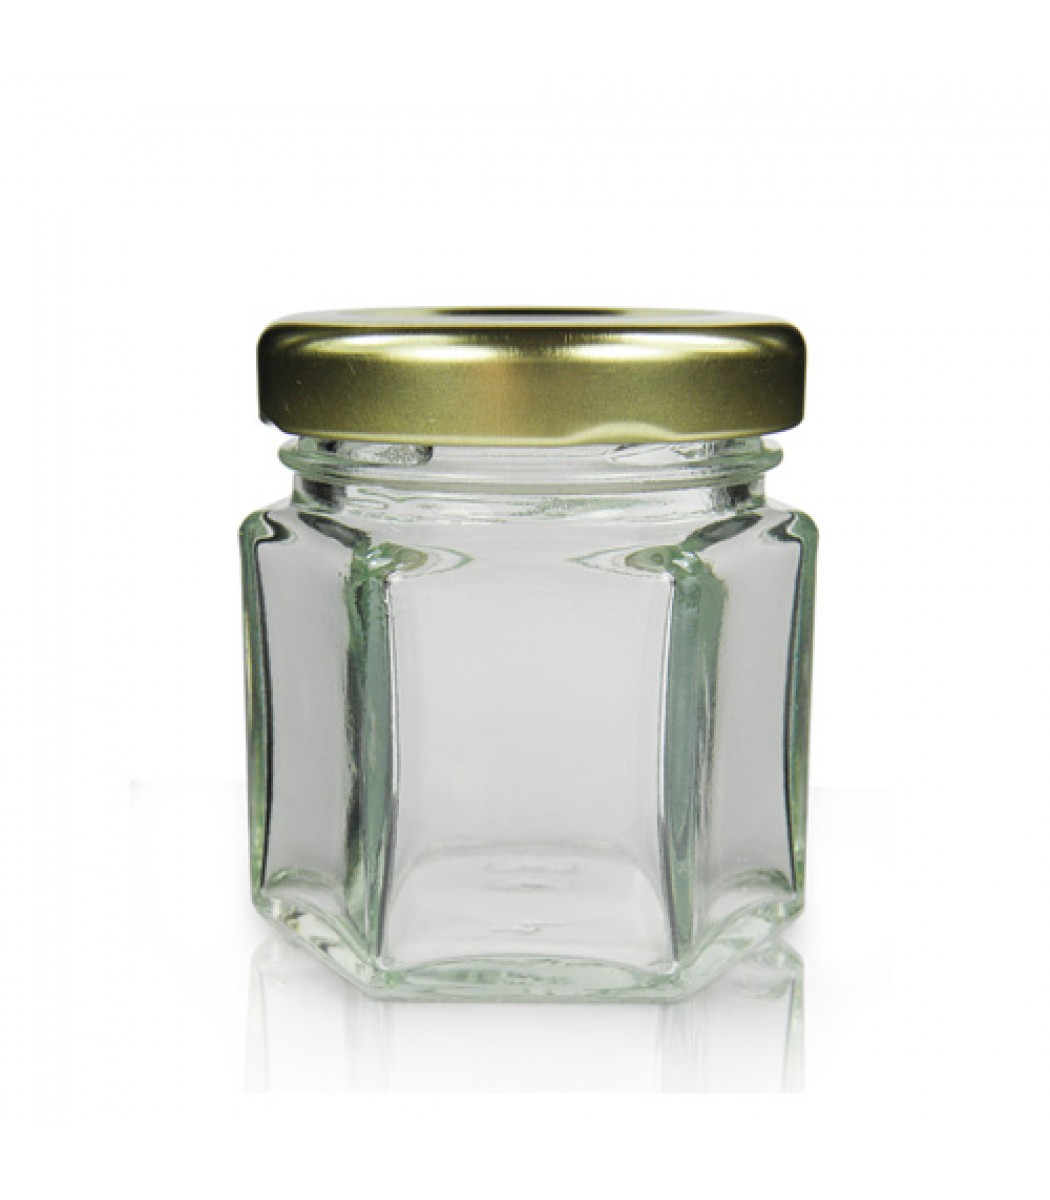 Lid And Jar 45ml Hexagonal Glass Jar With Lid